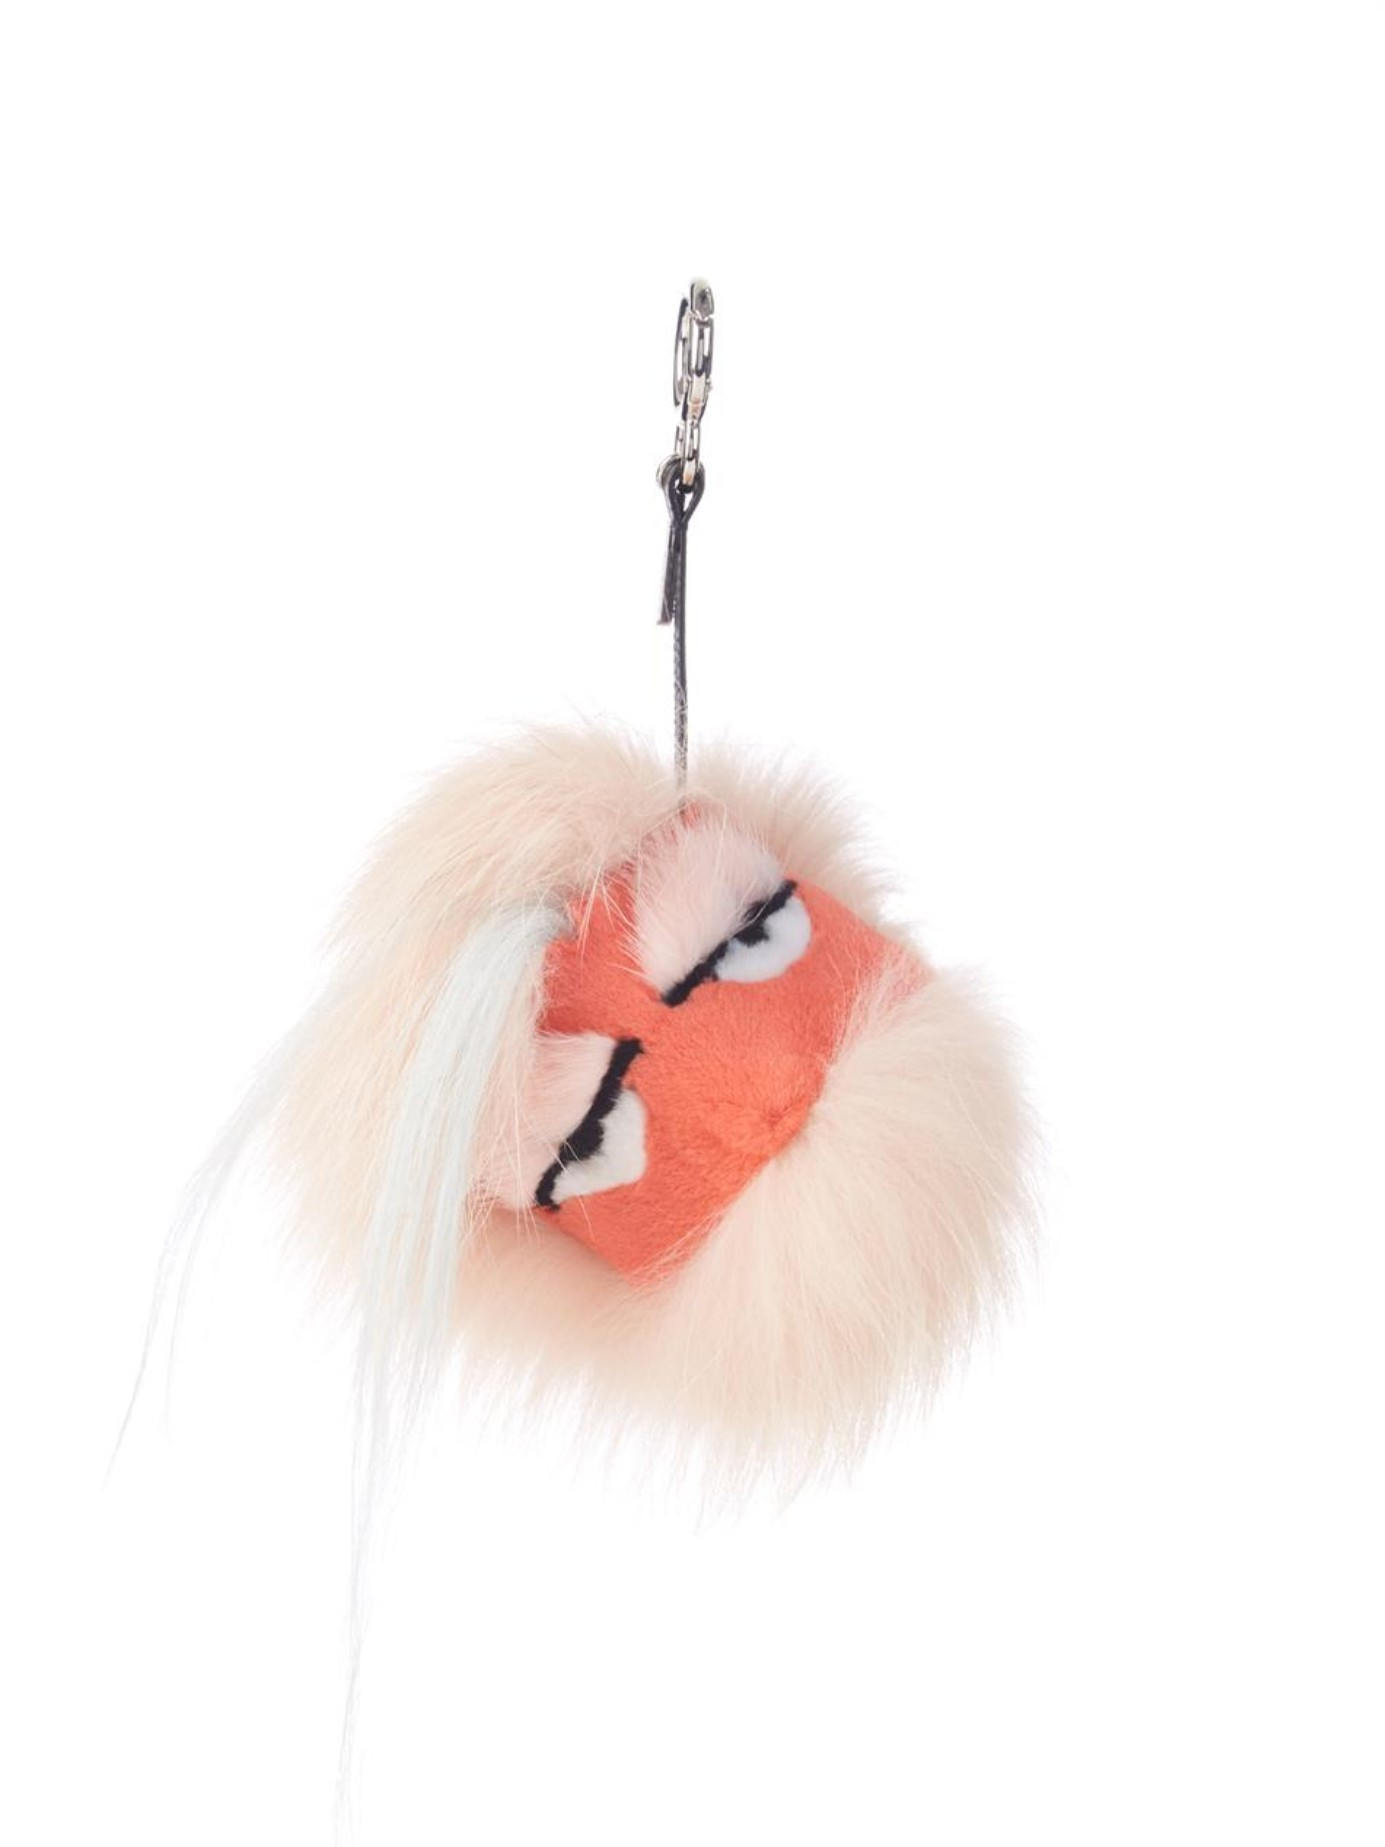 57670a0aef51 ... best price gallery. previously sold at matchesfashion womens fendi bag  bugs e4188 6ec6d low price fendi bag bug charm fur pink ...